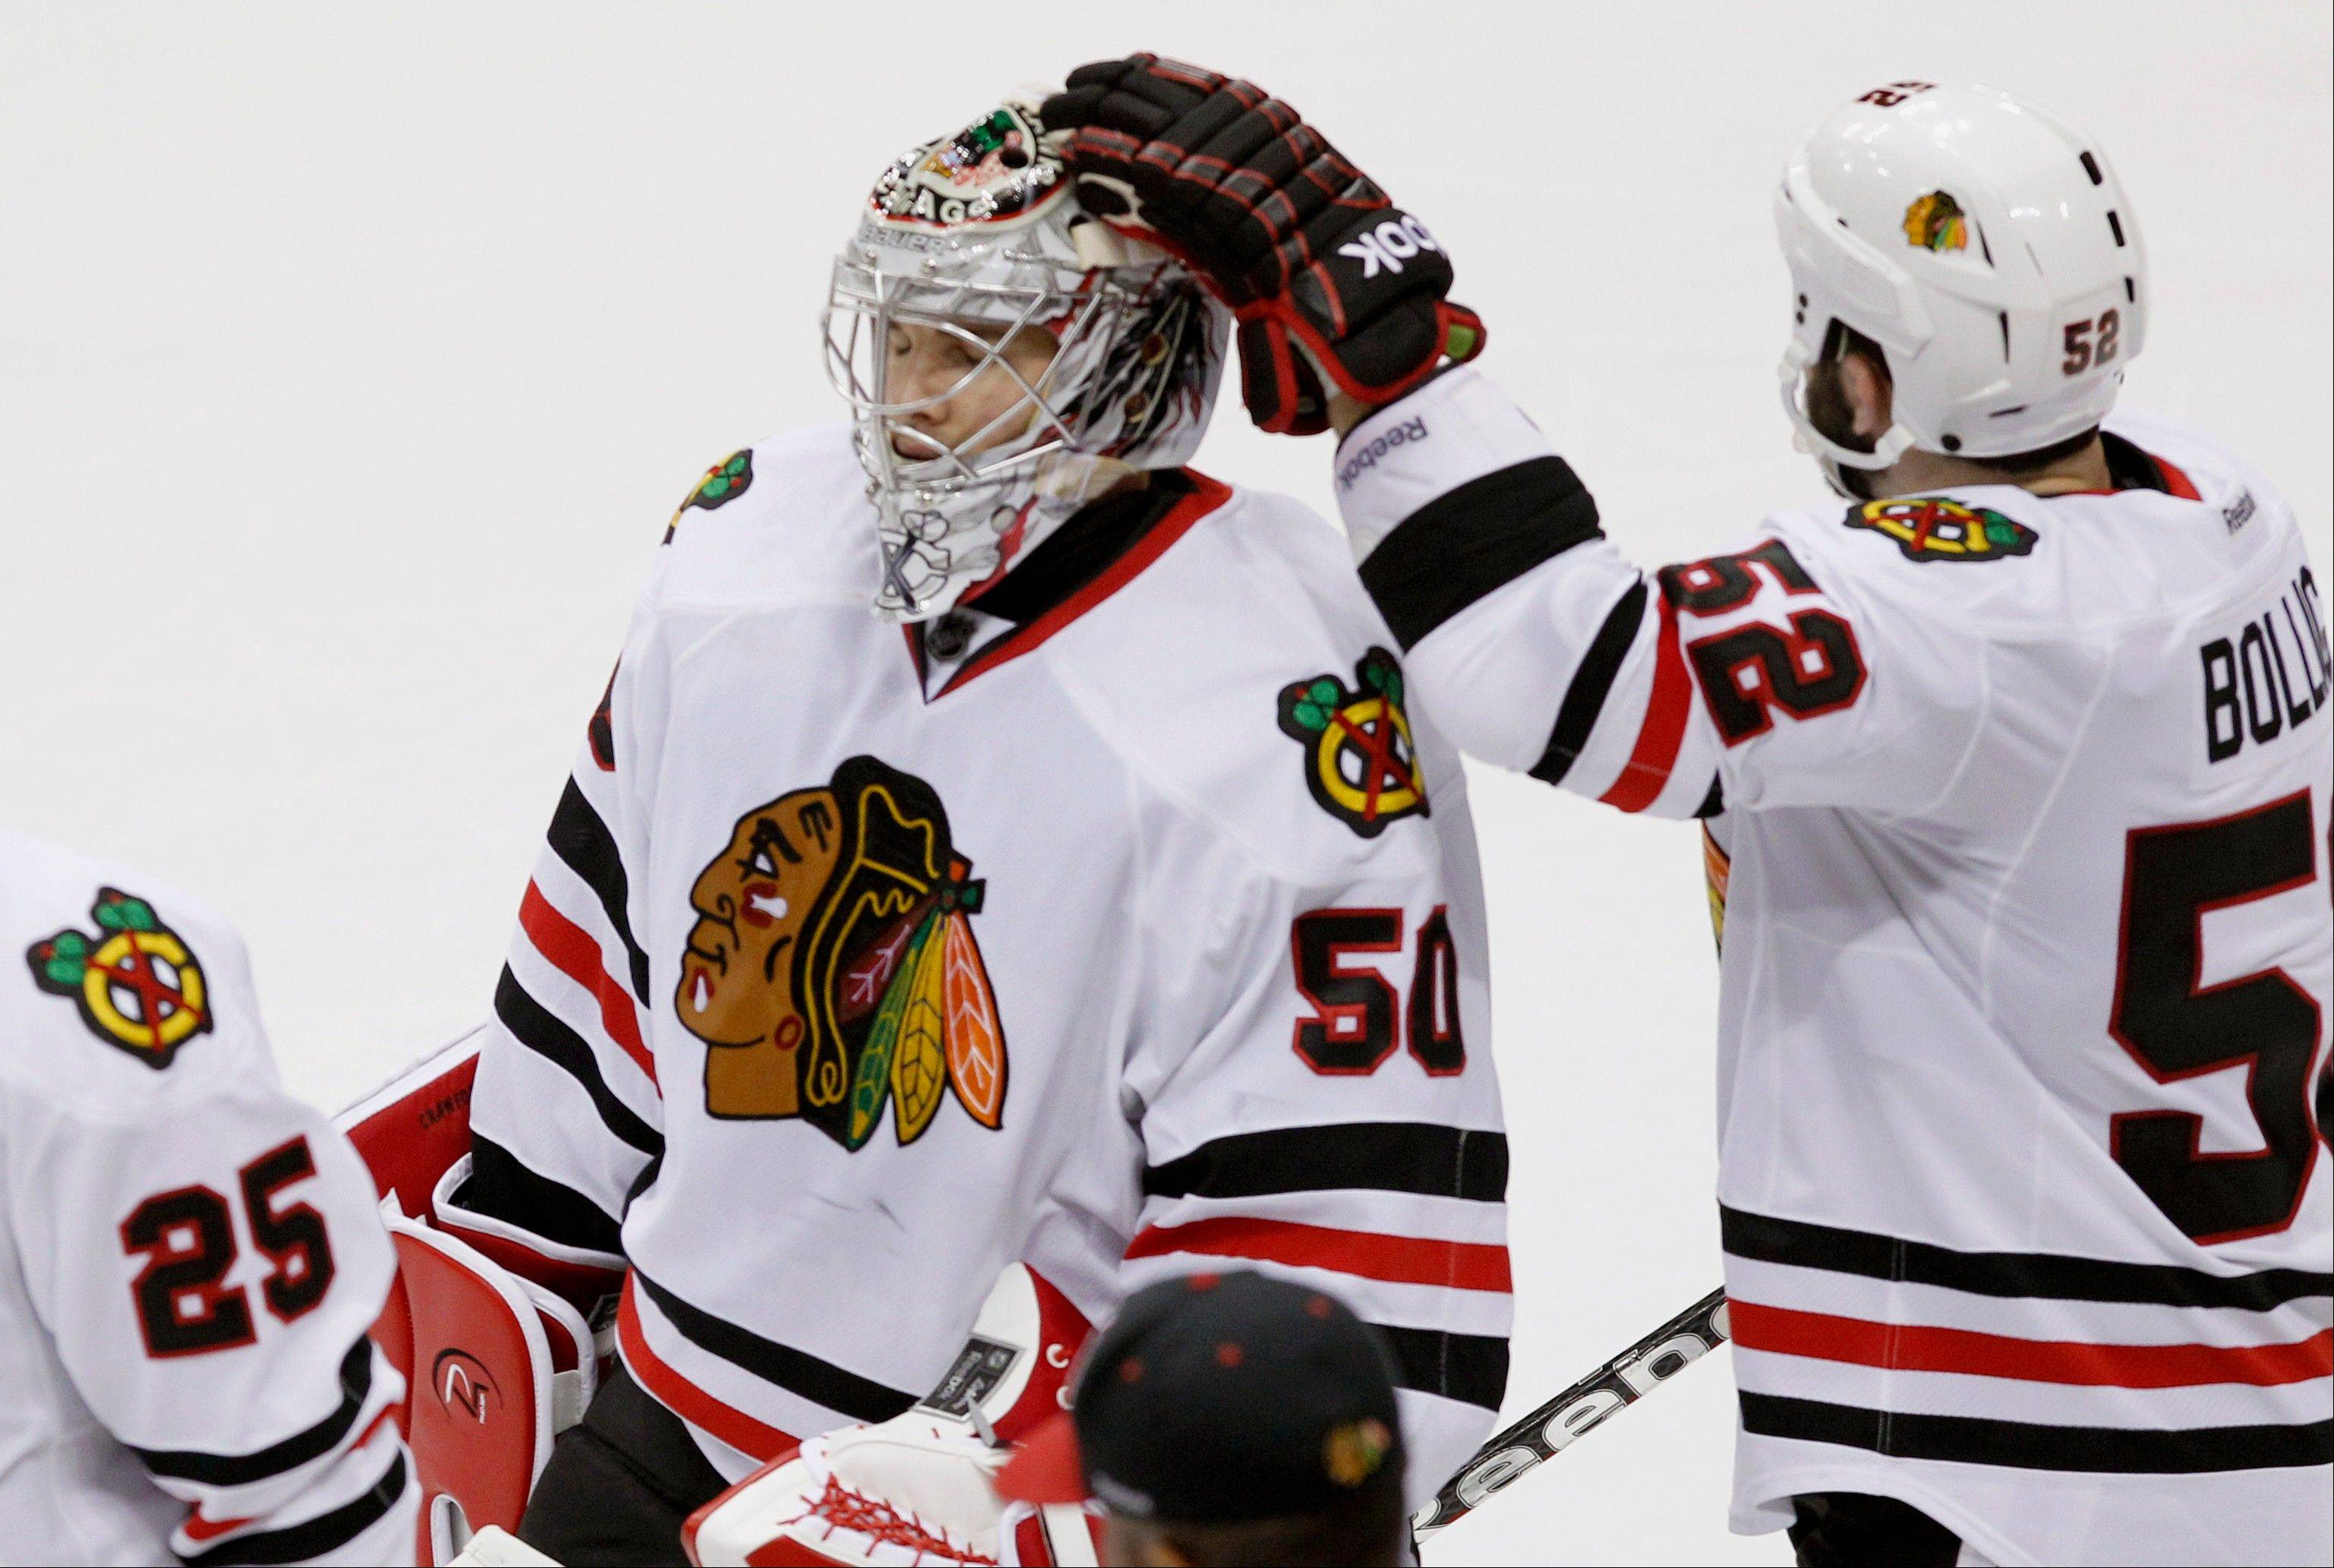 Blackhawks goalie Corey Crawford gets a pat on the helmet from Brandon Bollig after the Minnesota Wild won 3-2 in a shootout Wednesday night.